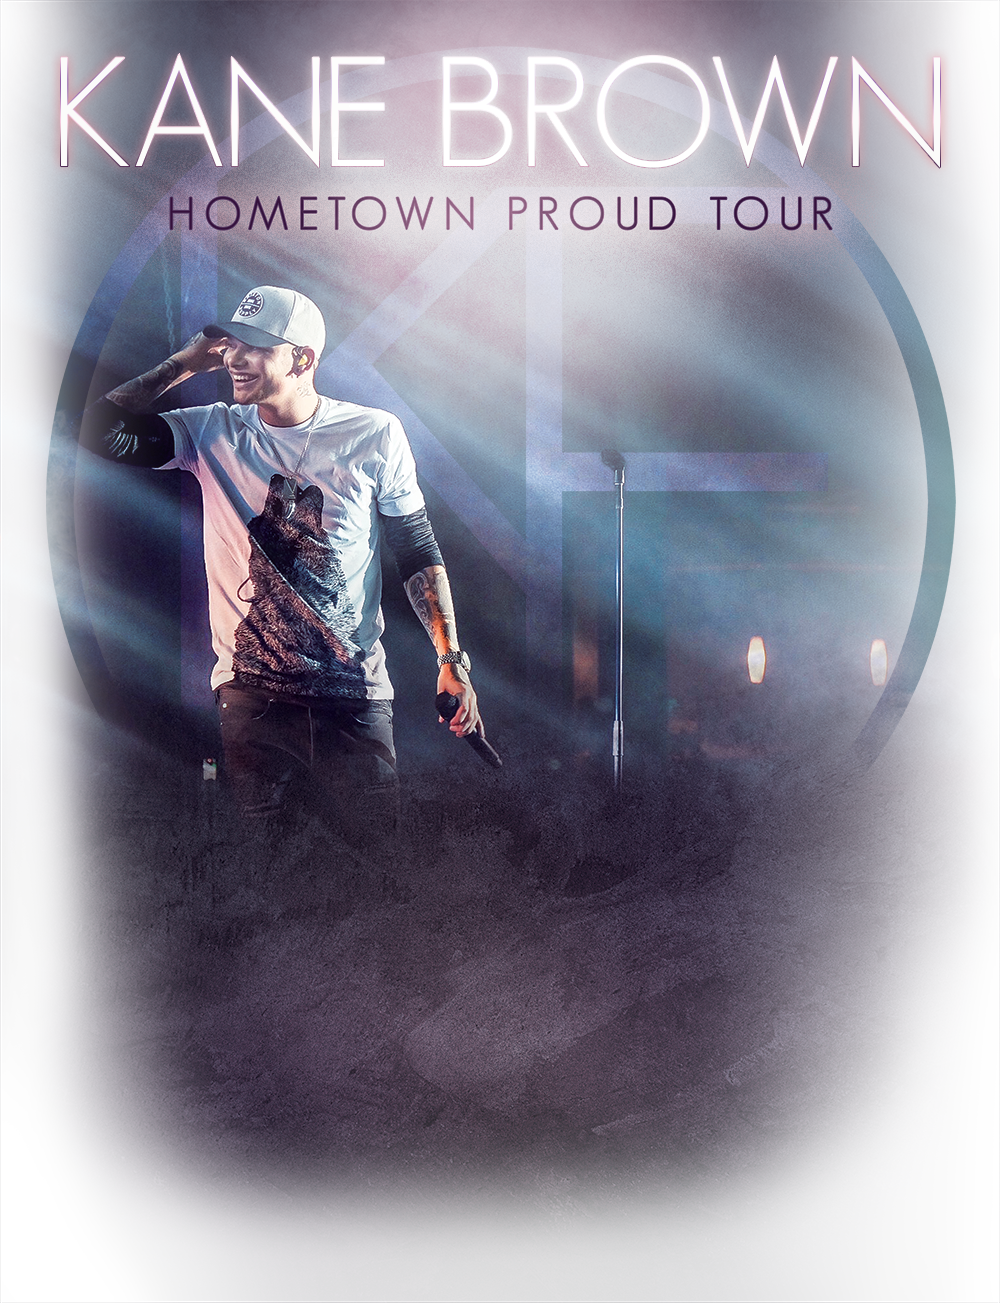 Kane Brown Hometown Proud Tour